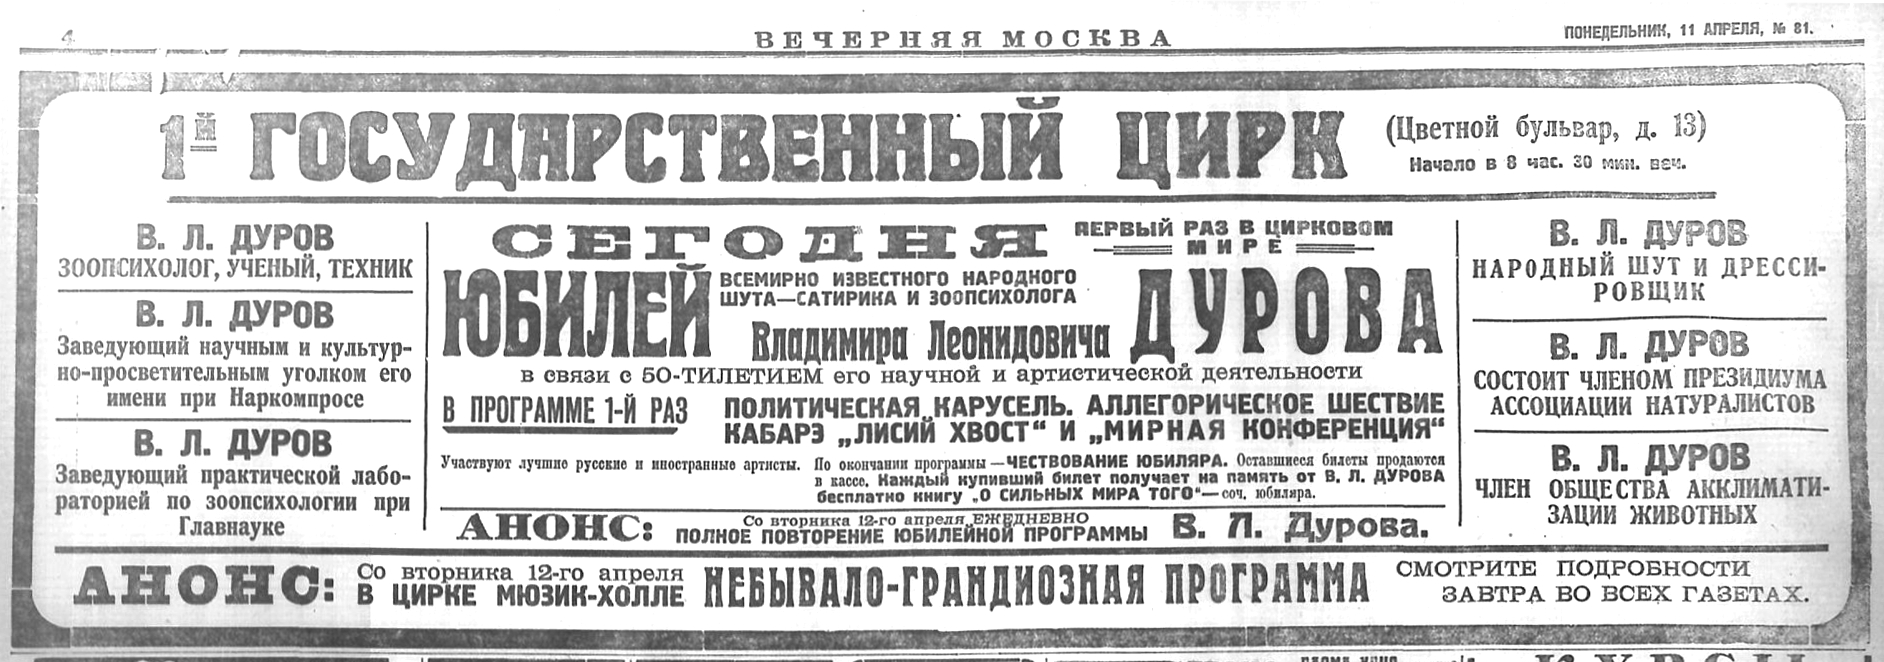 6. ВМ-11.04.27